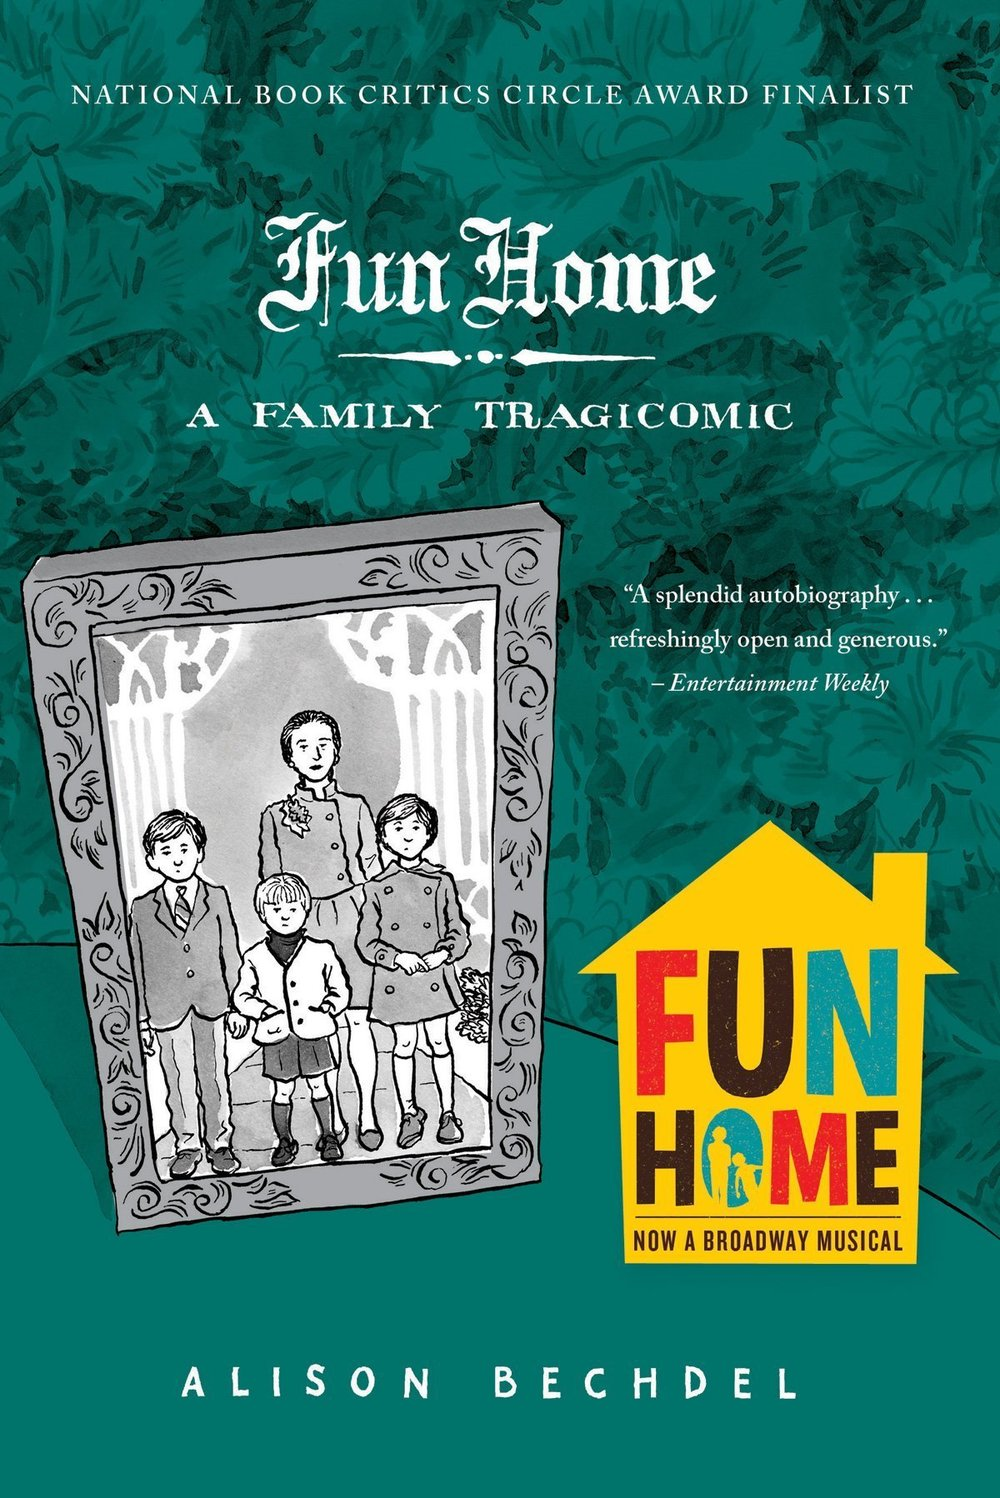 Fun Home , by Alison Bechdel